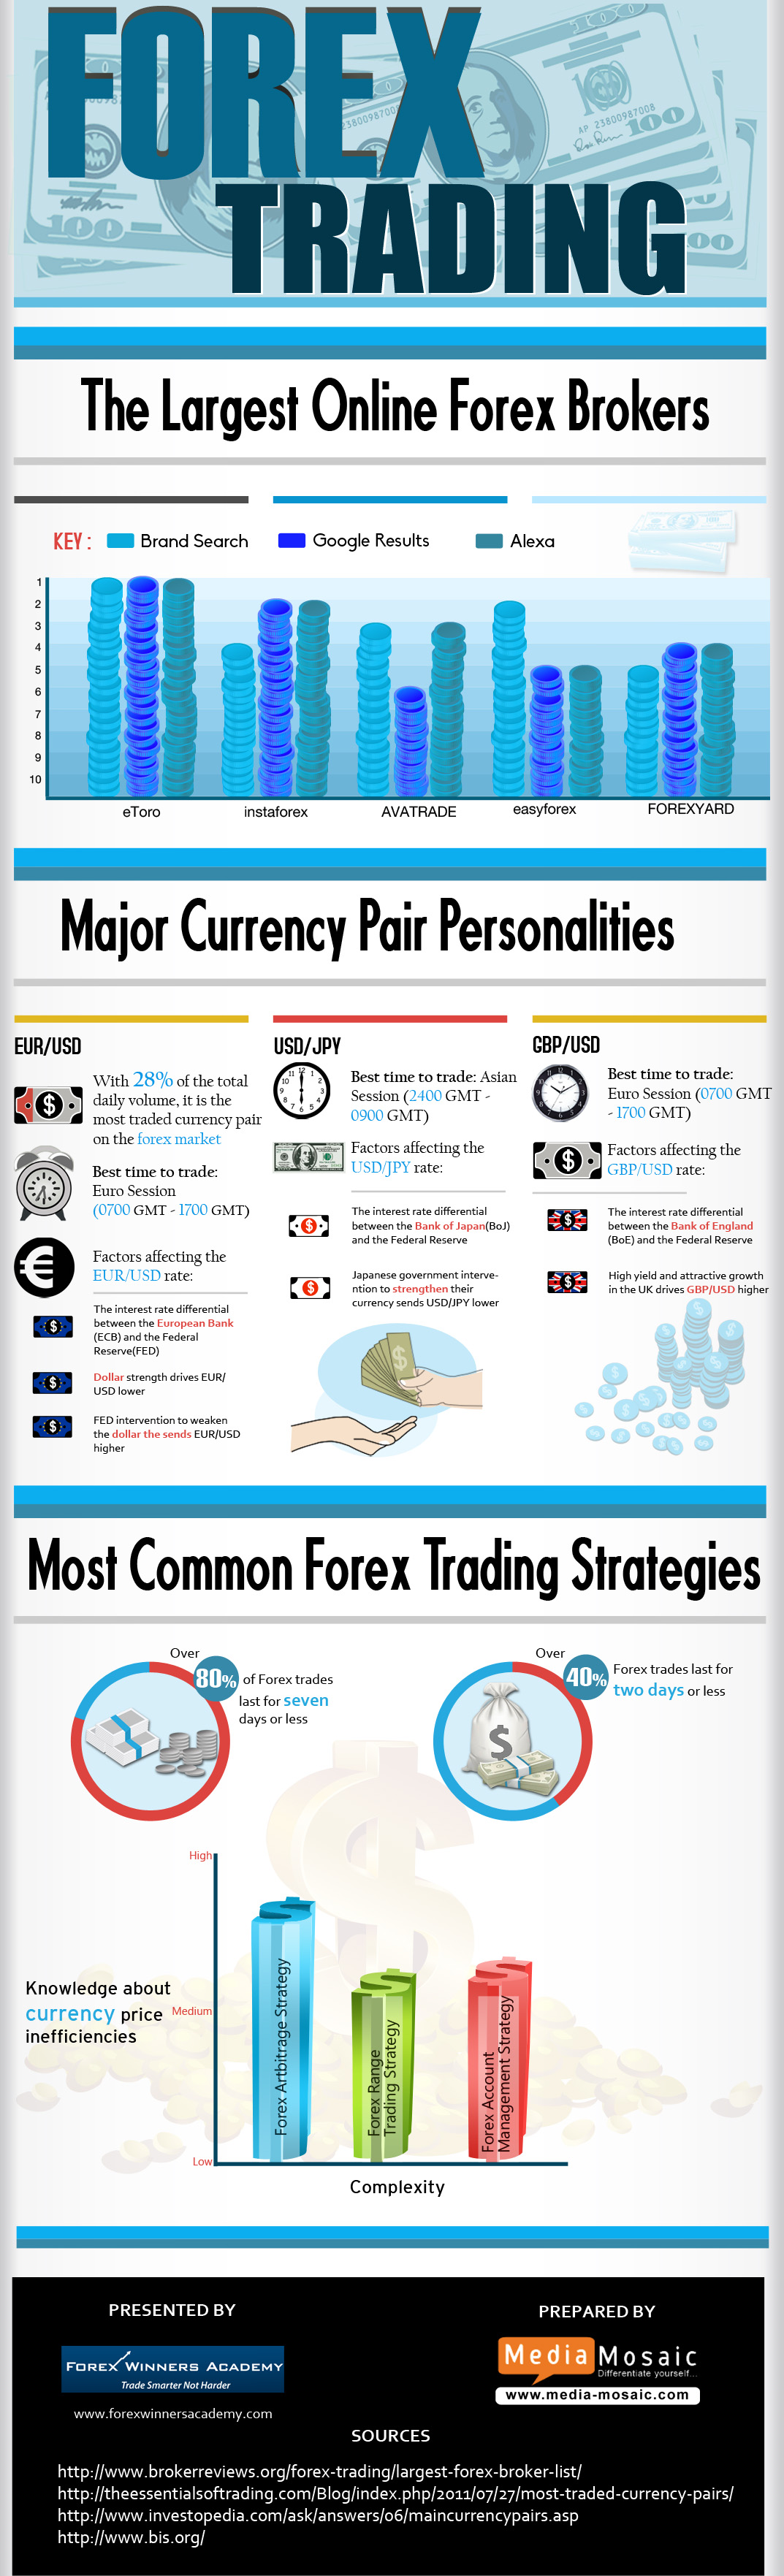 Forex options brokers list